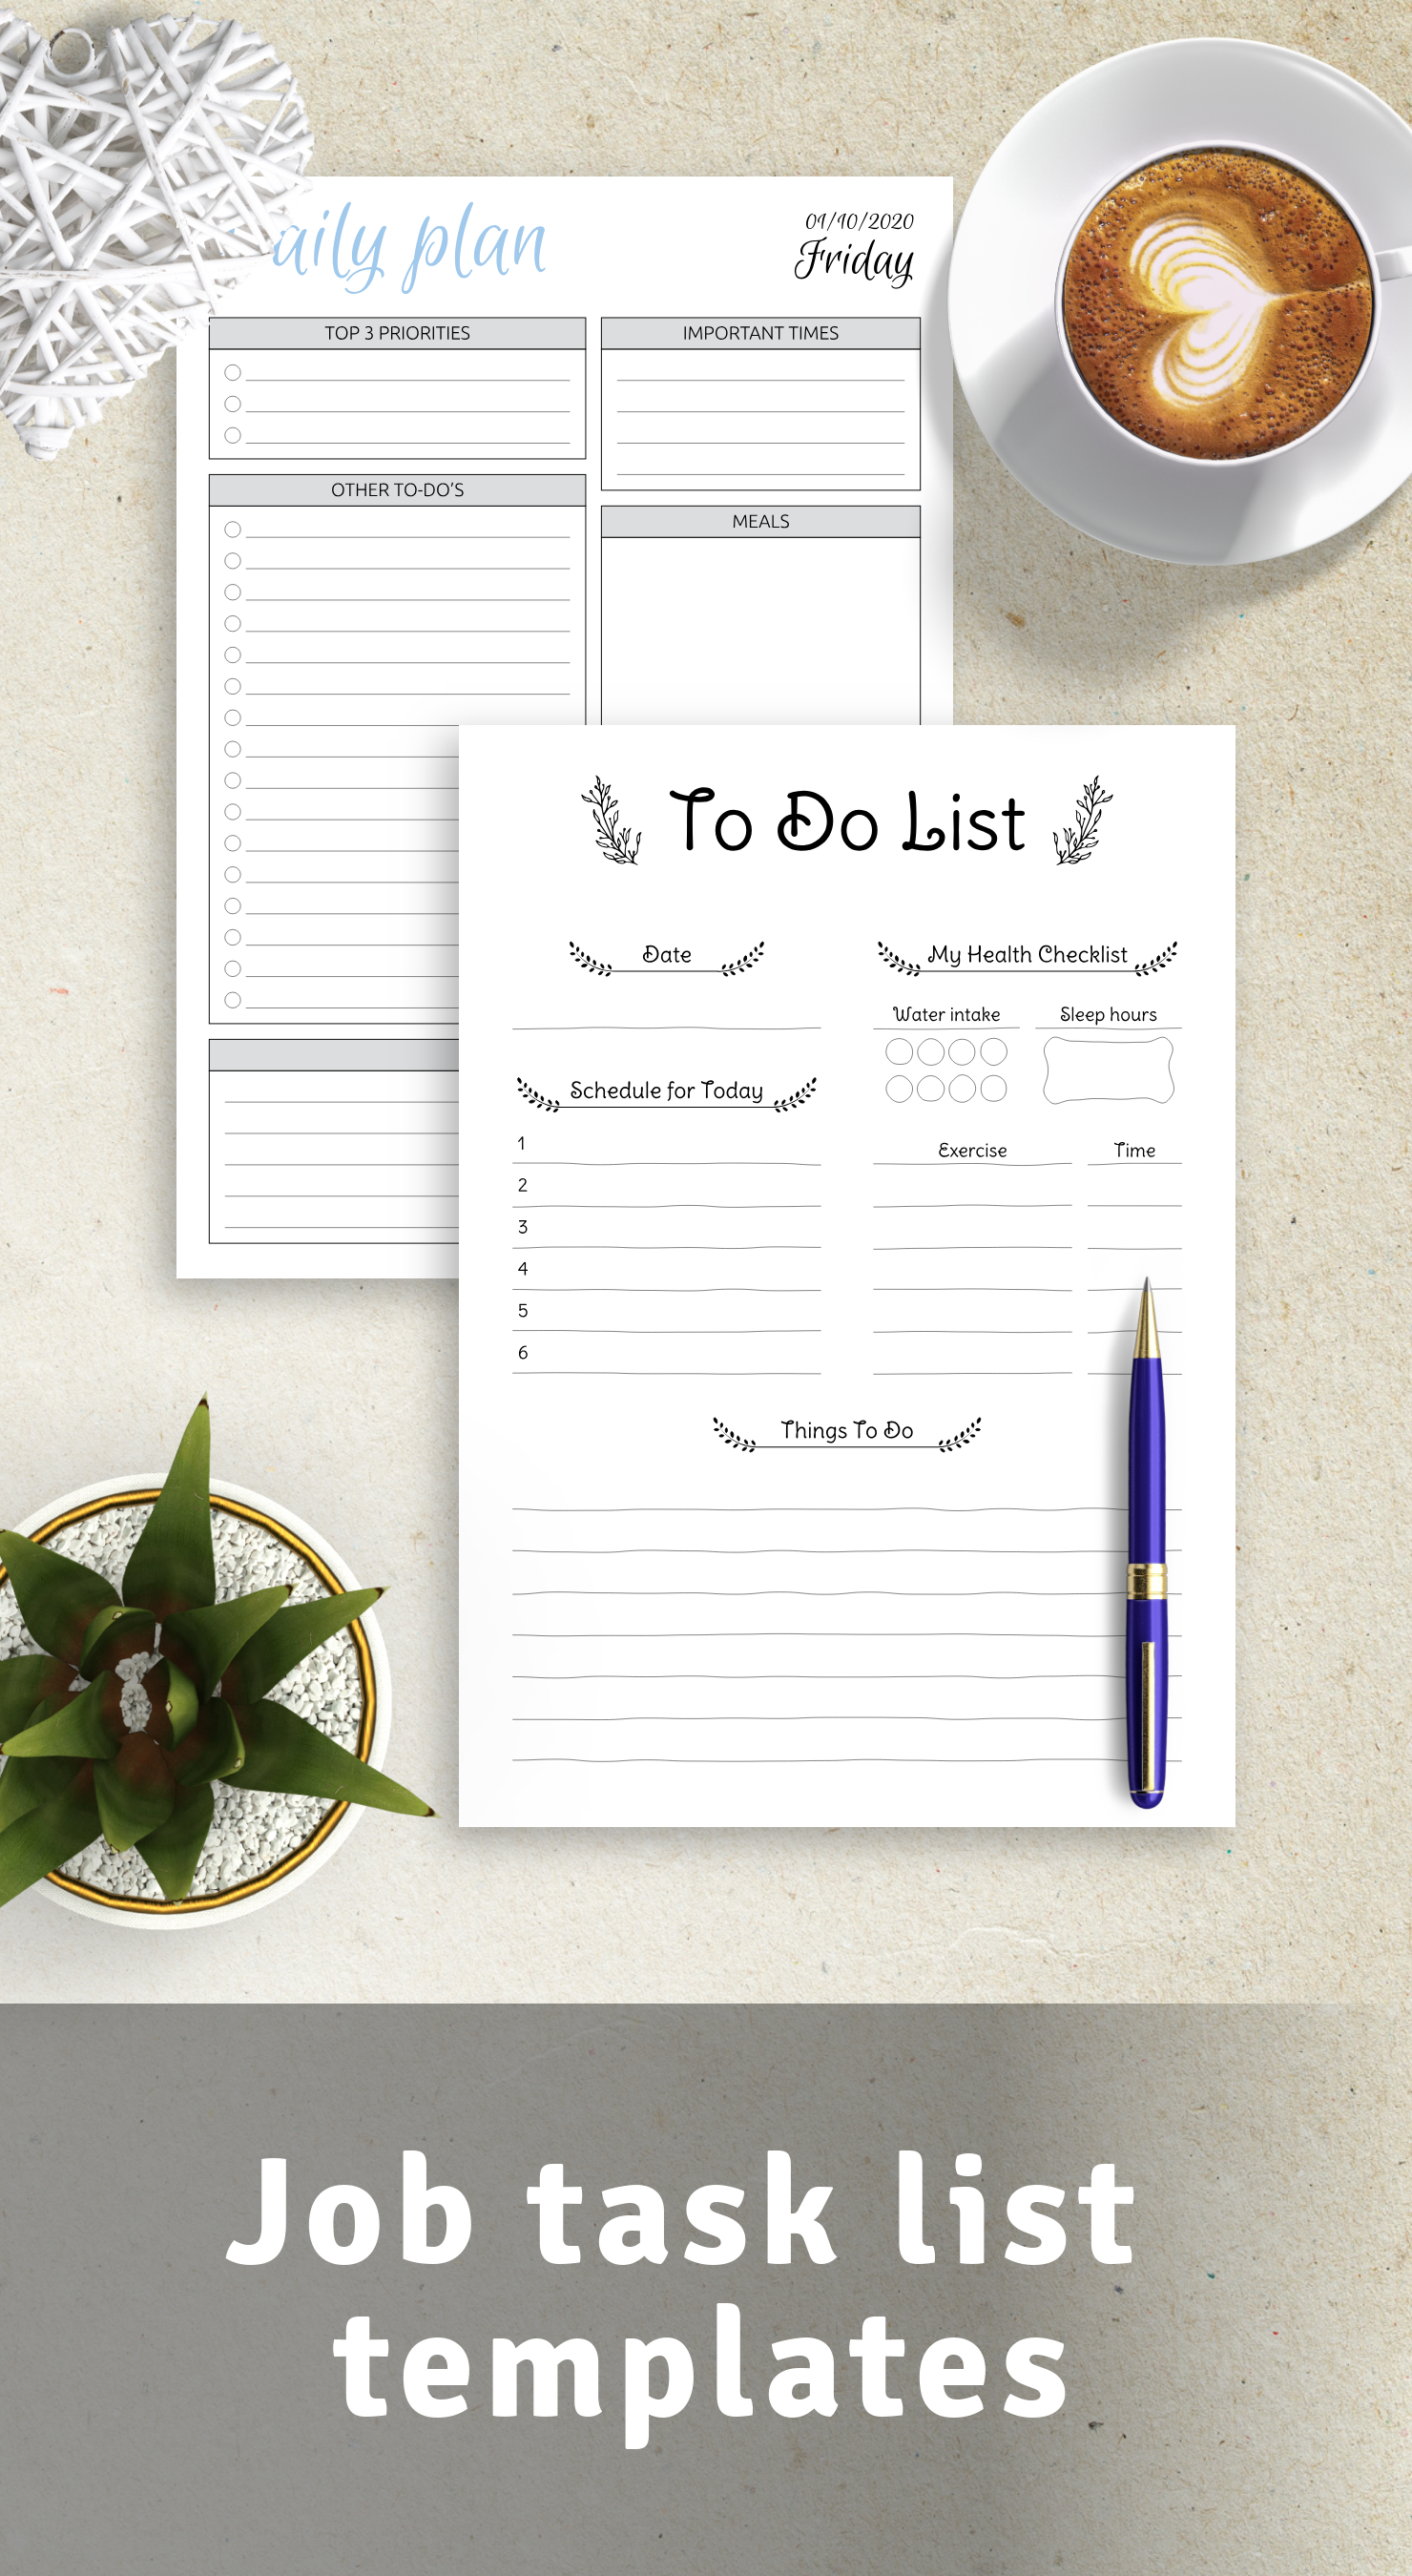 Get job task list templates